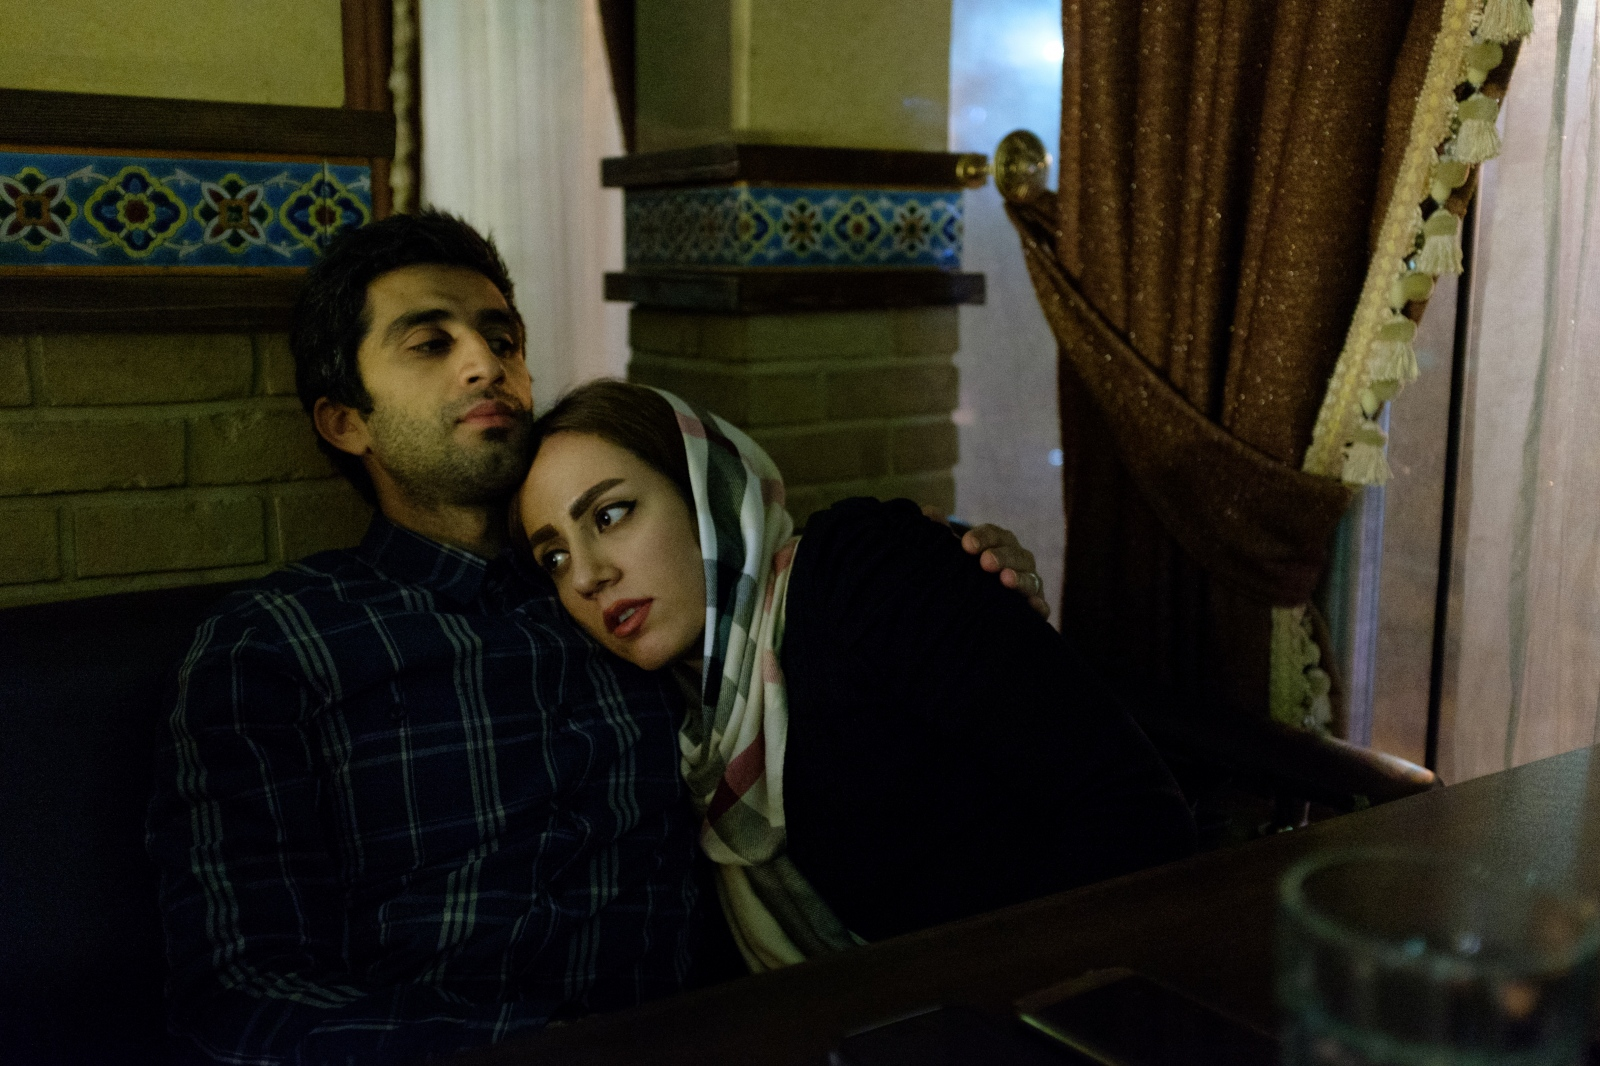 Hamed and Hode listen to music in a restaurant in Tehran. They fell in love during their study and married four year later.